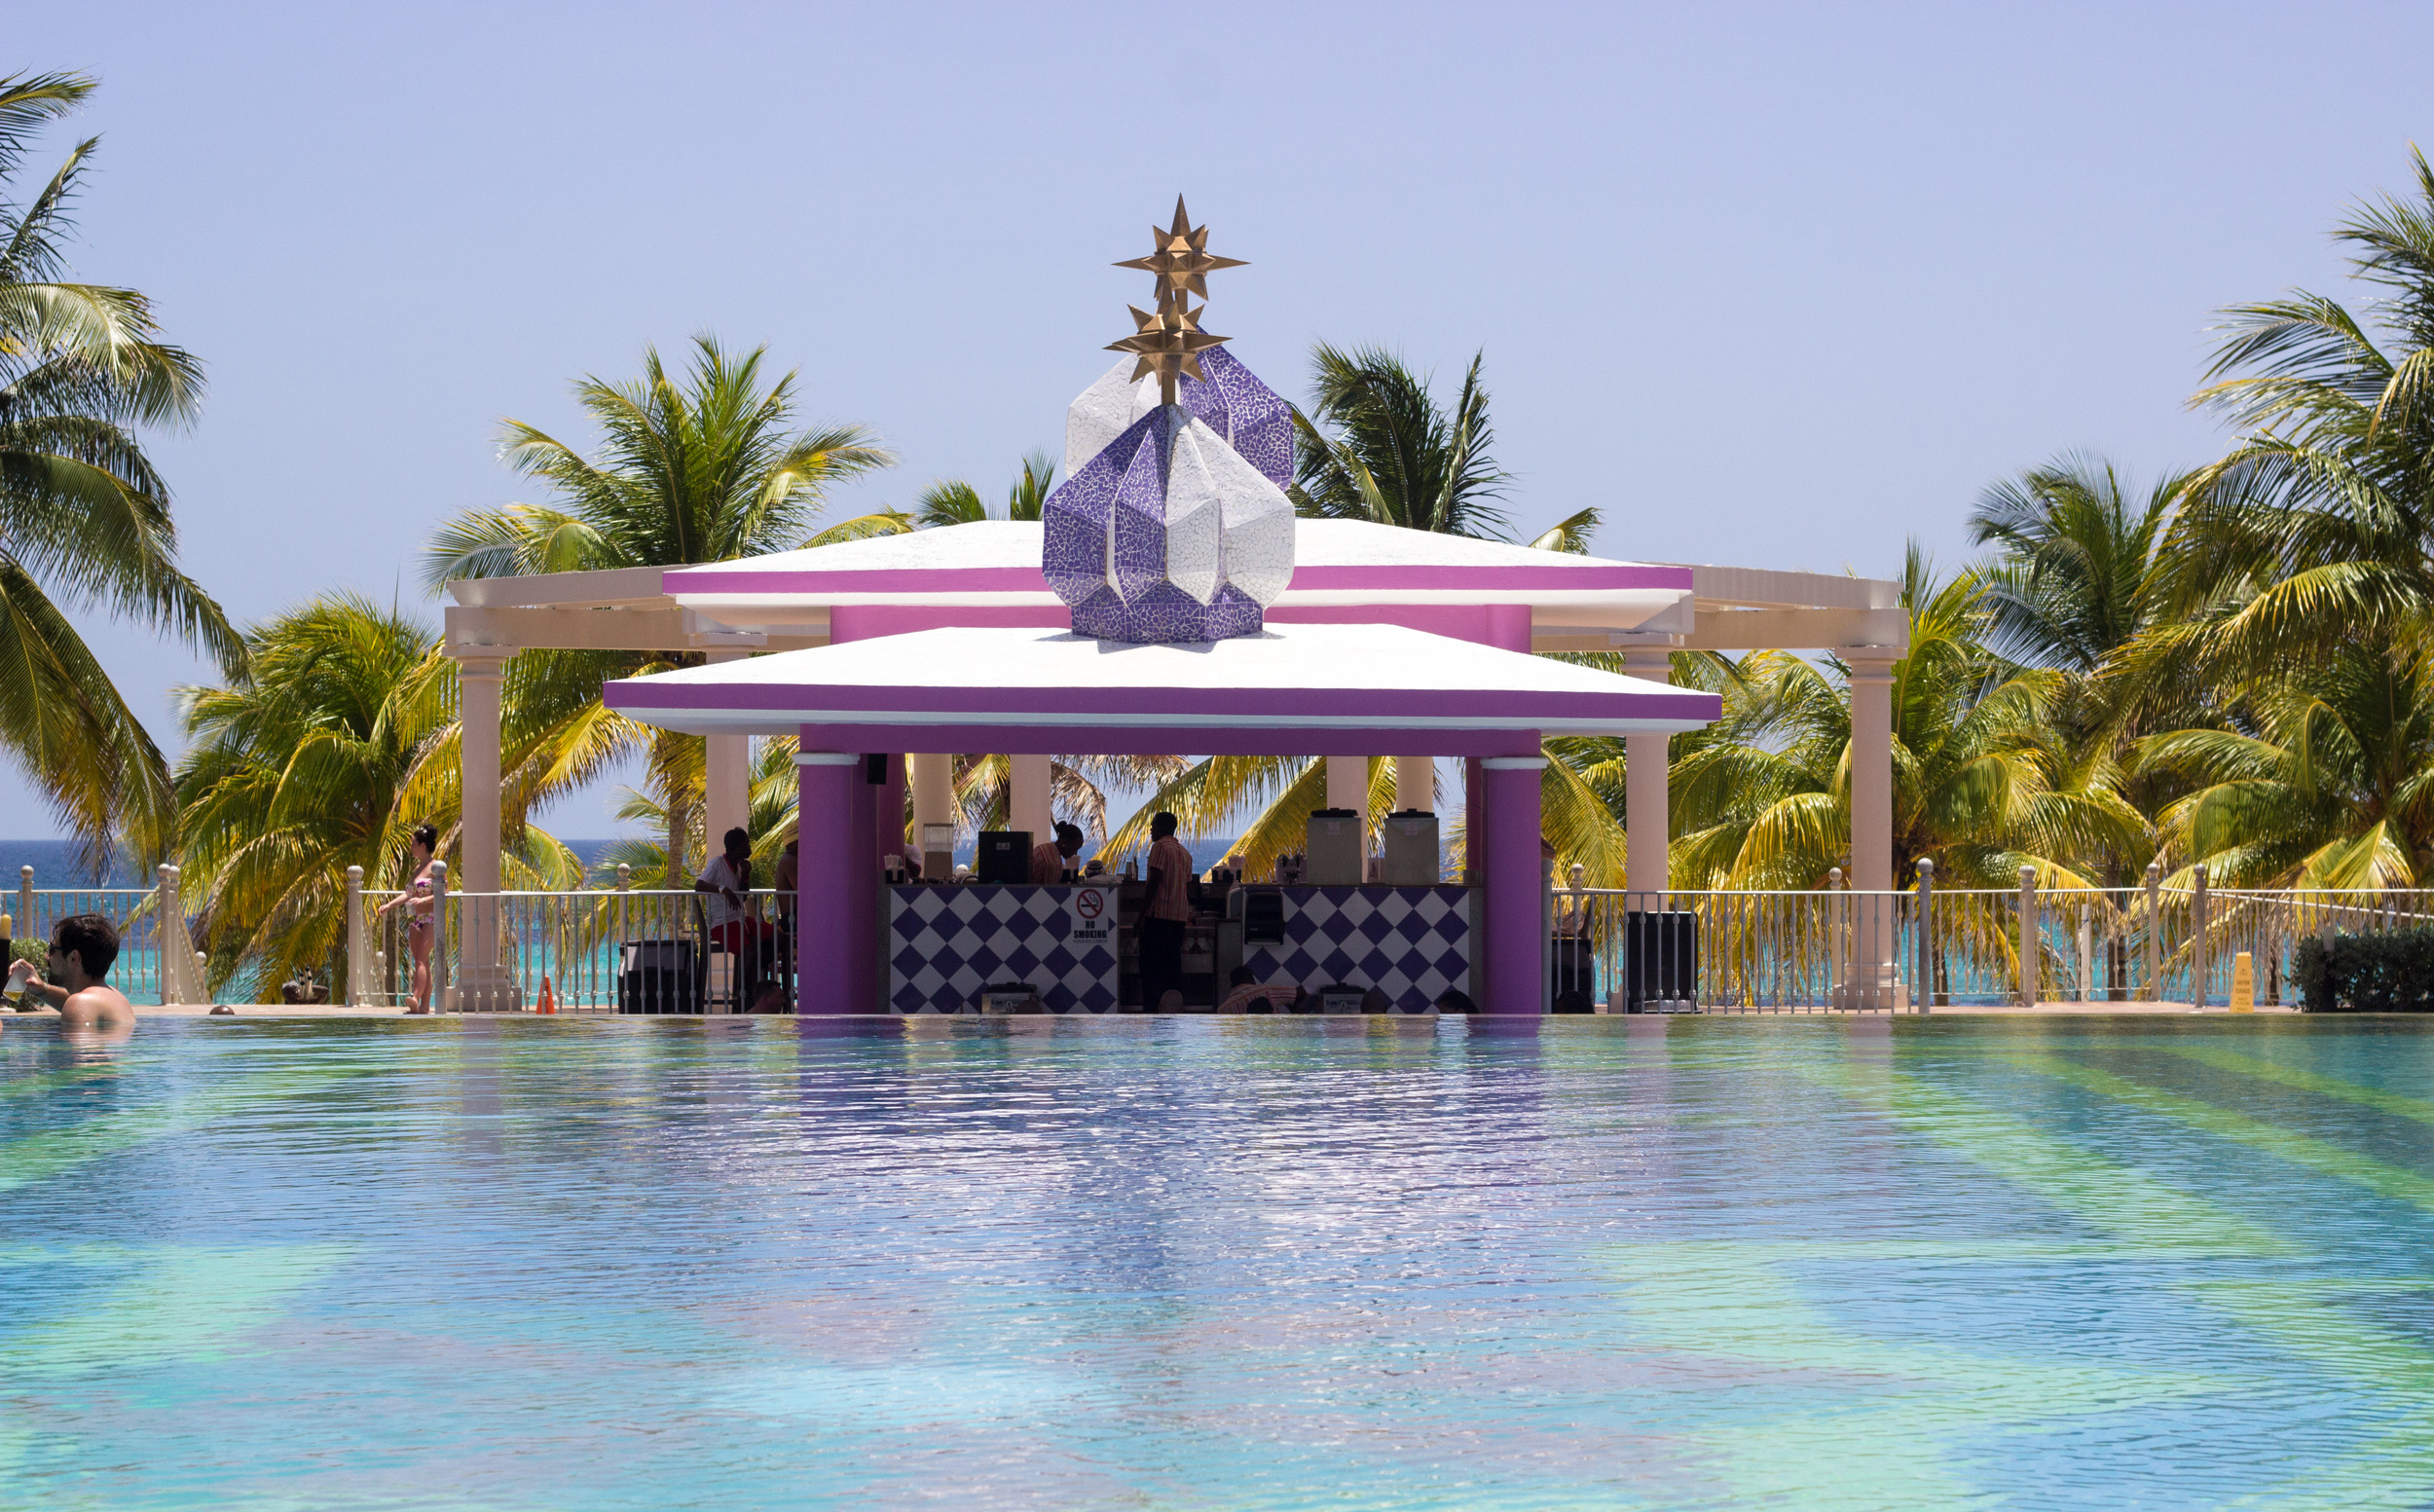 POOL SIDE AT THE RIU